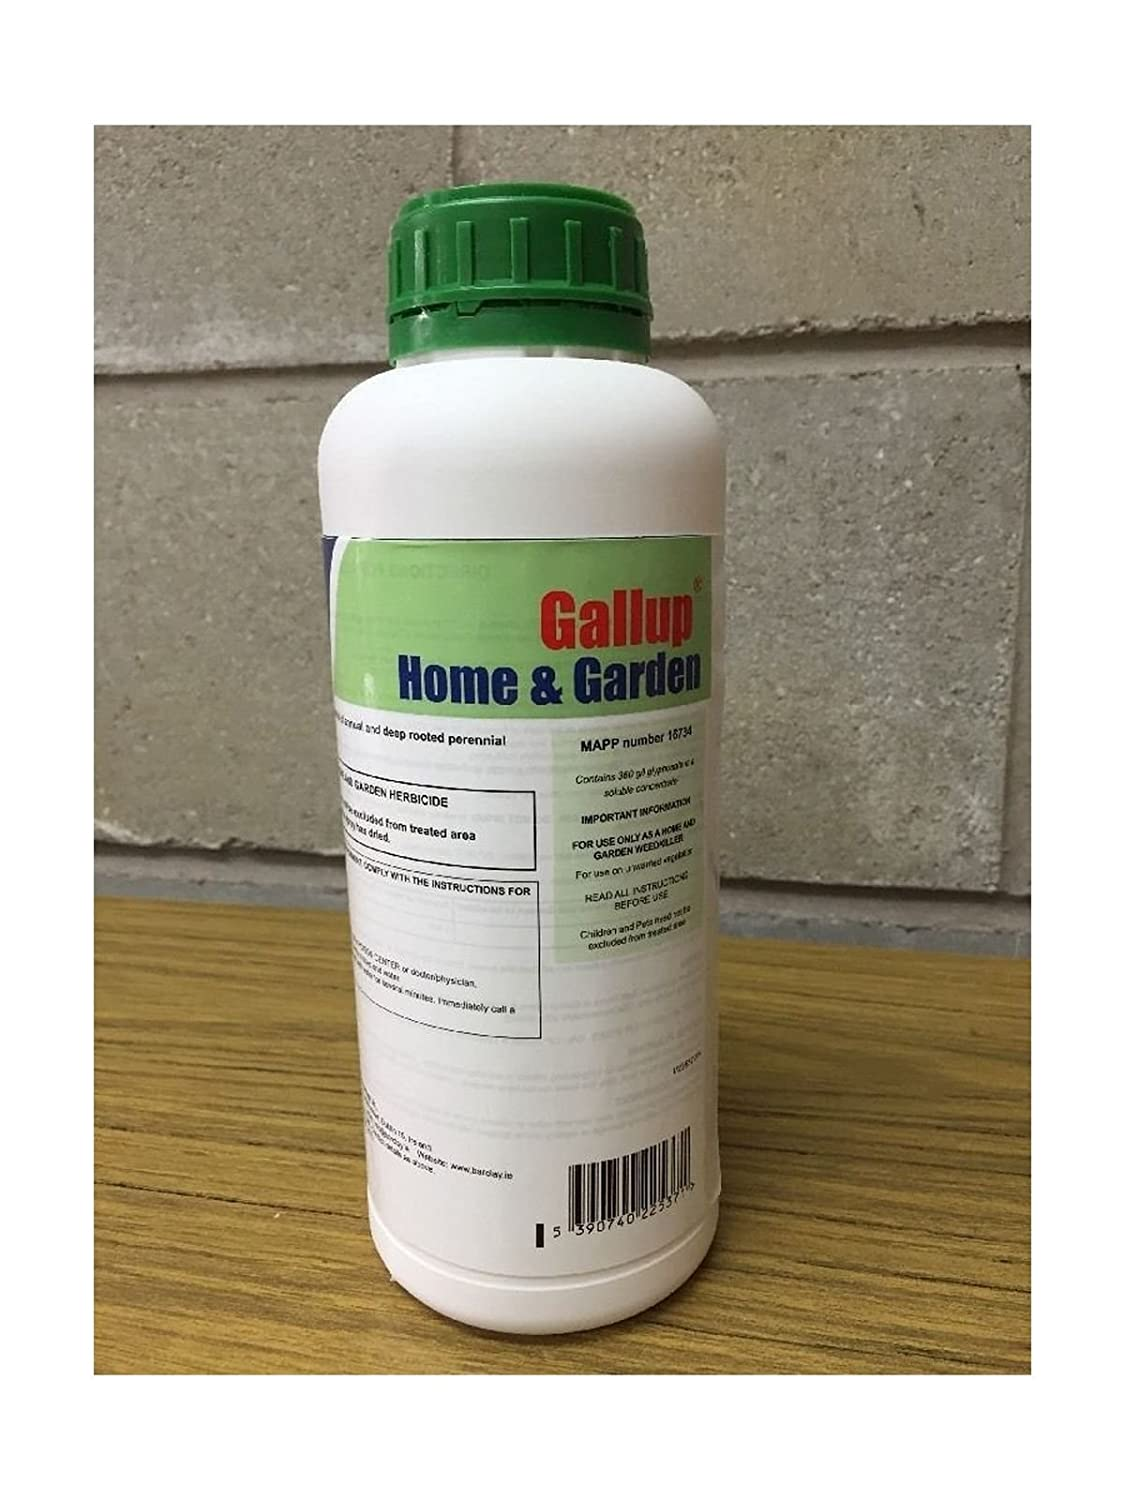 Gallup Barclay Home & Garden Glyphosate Commercial Strength Weed killer treats upto 1666 sq/m 1Lt Bottle Barclays